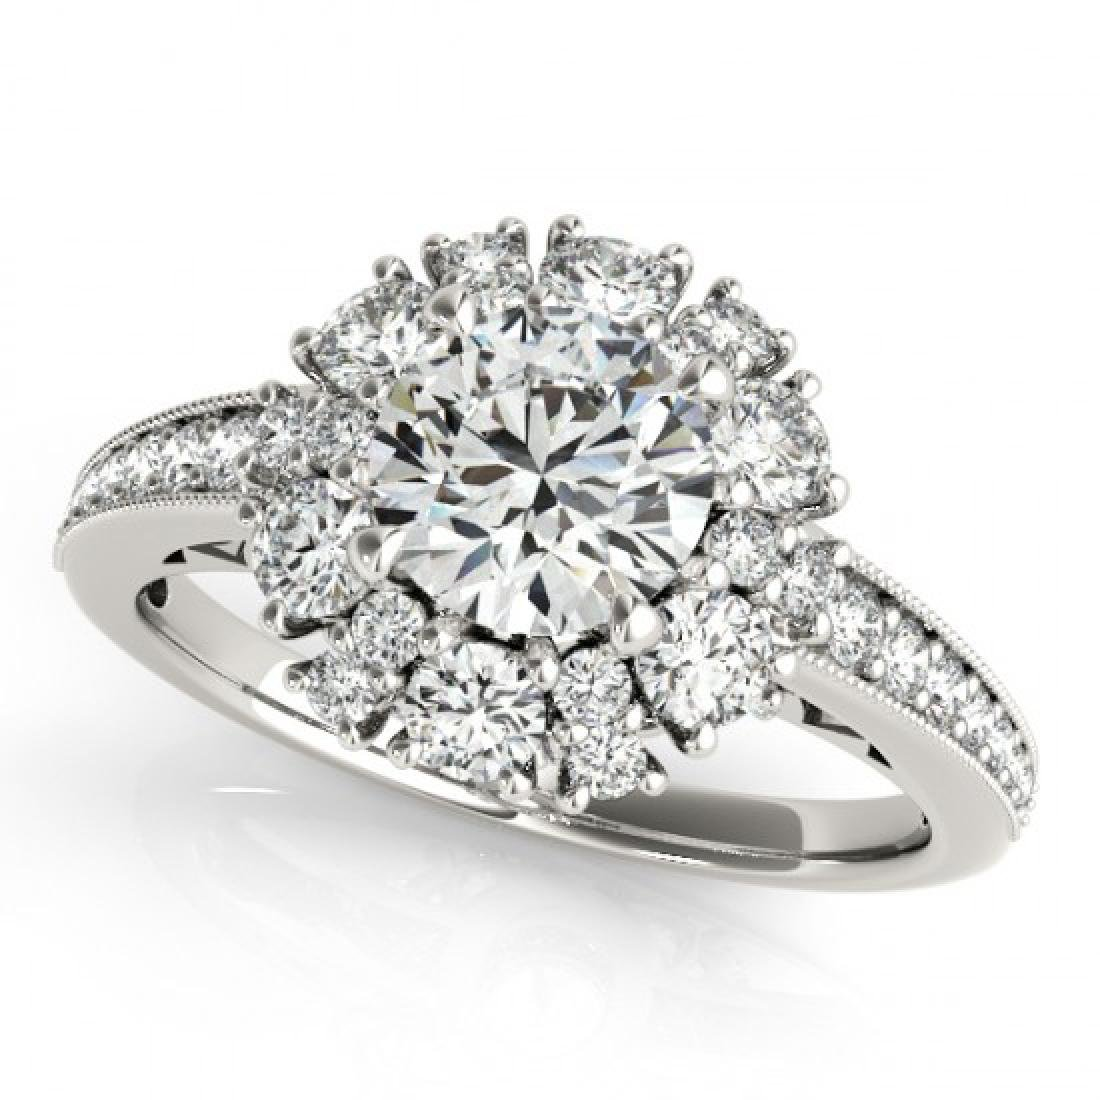 1.66 CTW Certified VS/SI Diamond Solitaire Halo Ring